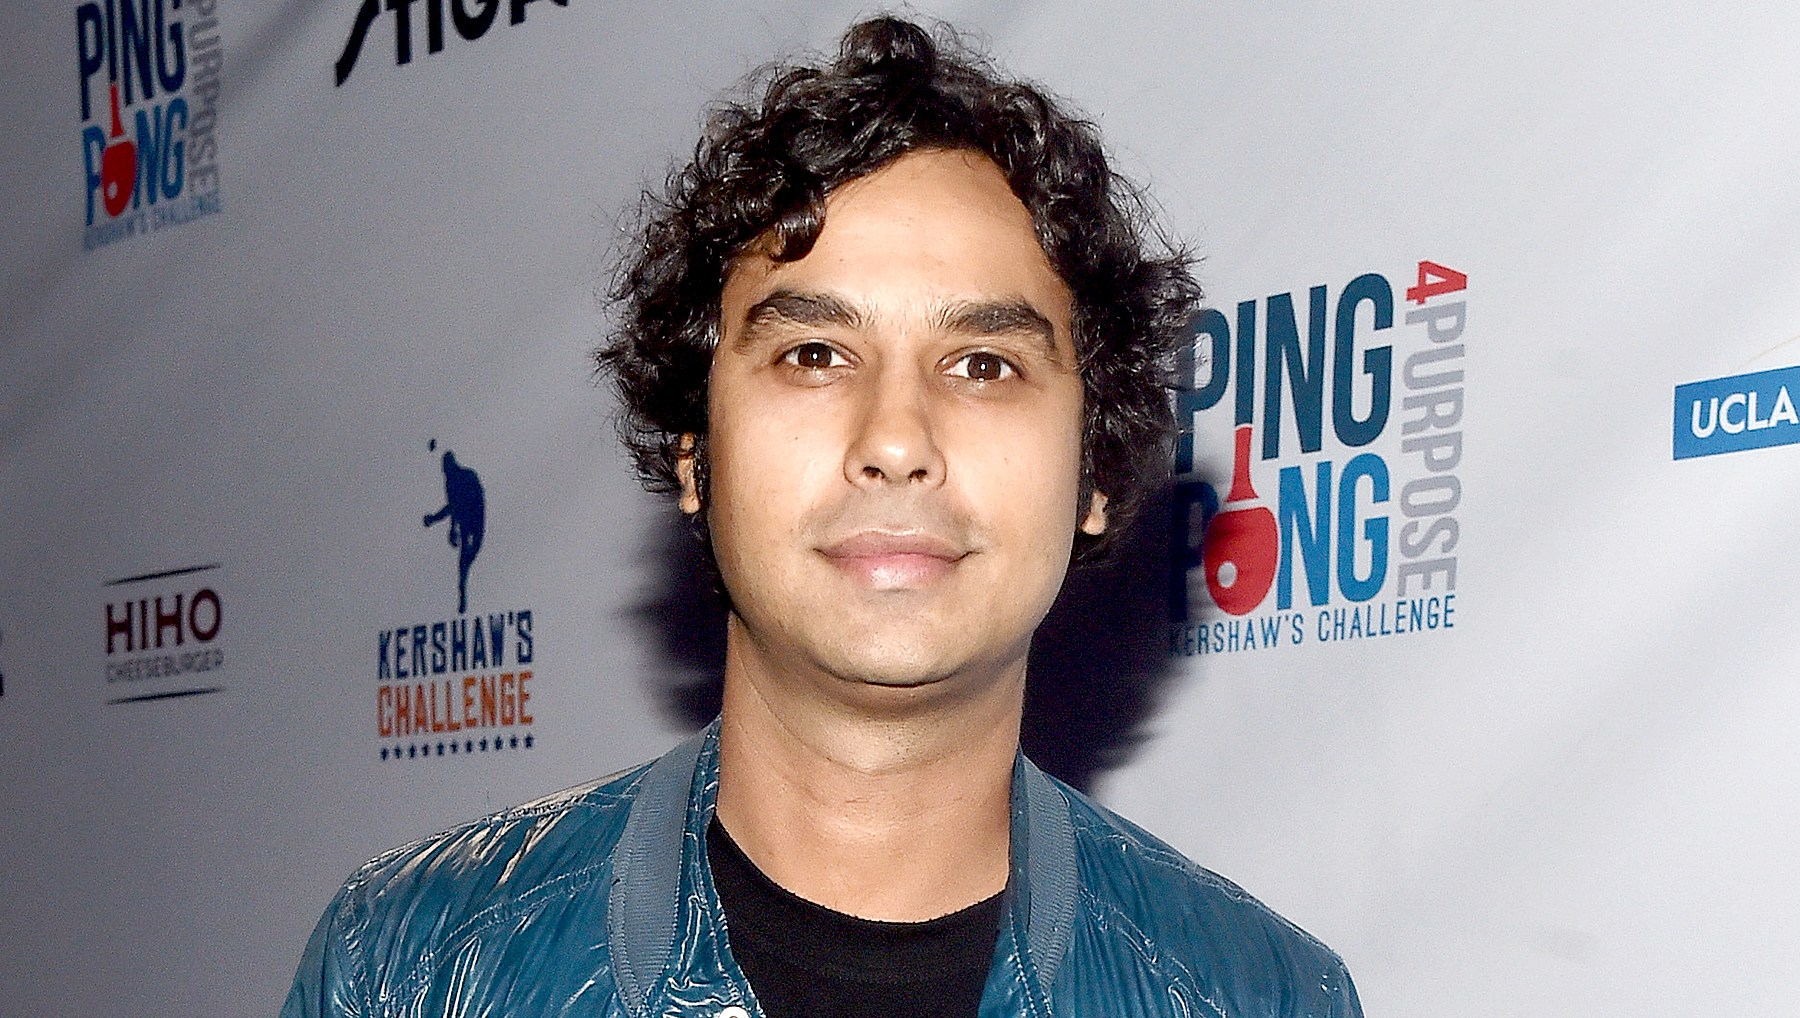 Kunal-Nayyar-big-bang-theory-ending